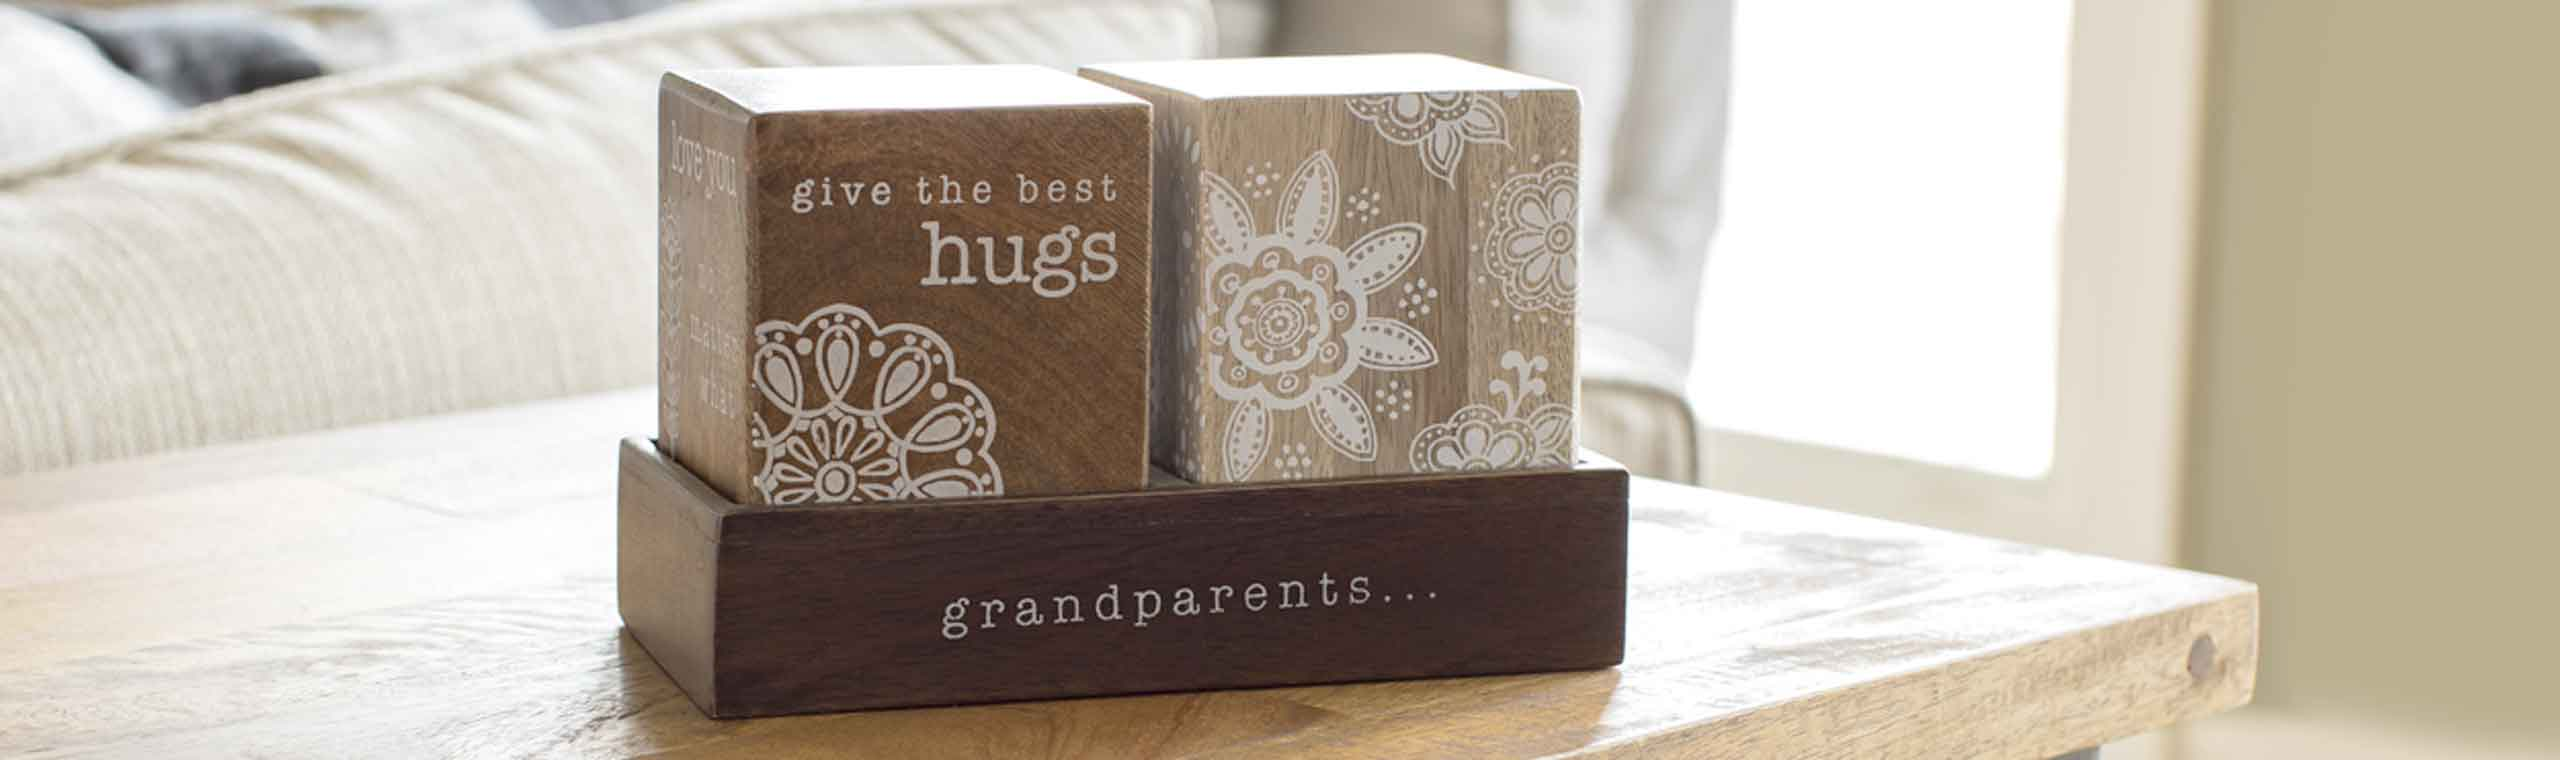 decrative wooden blocks for grandparents with the quote, give the best hugs grandparents